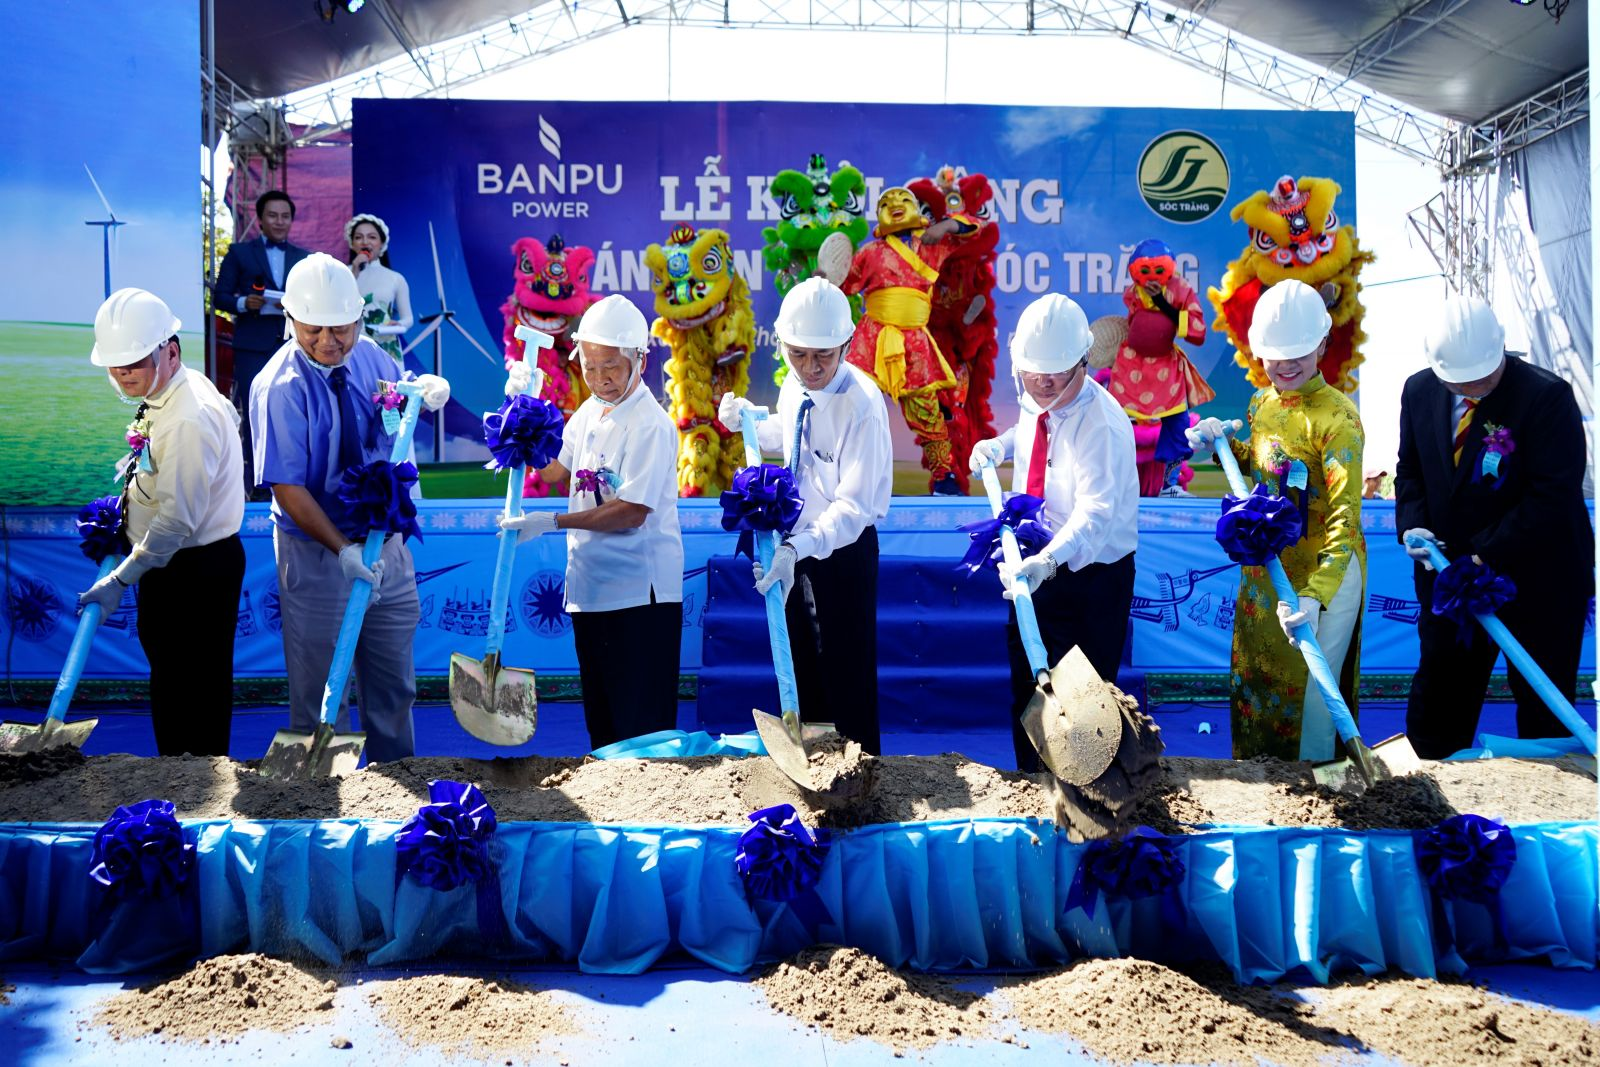 work-starts-on-soc-trang-wind-power-plant-no-3